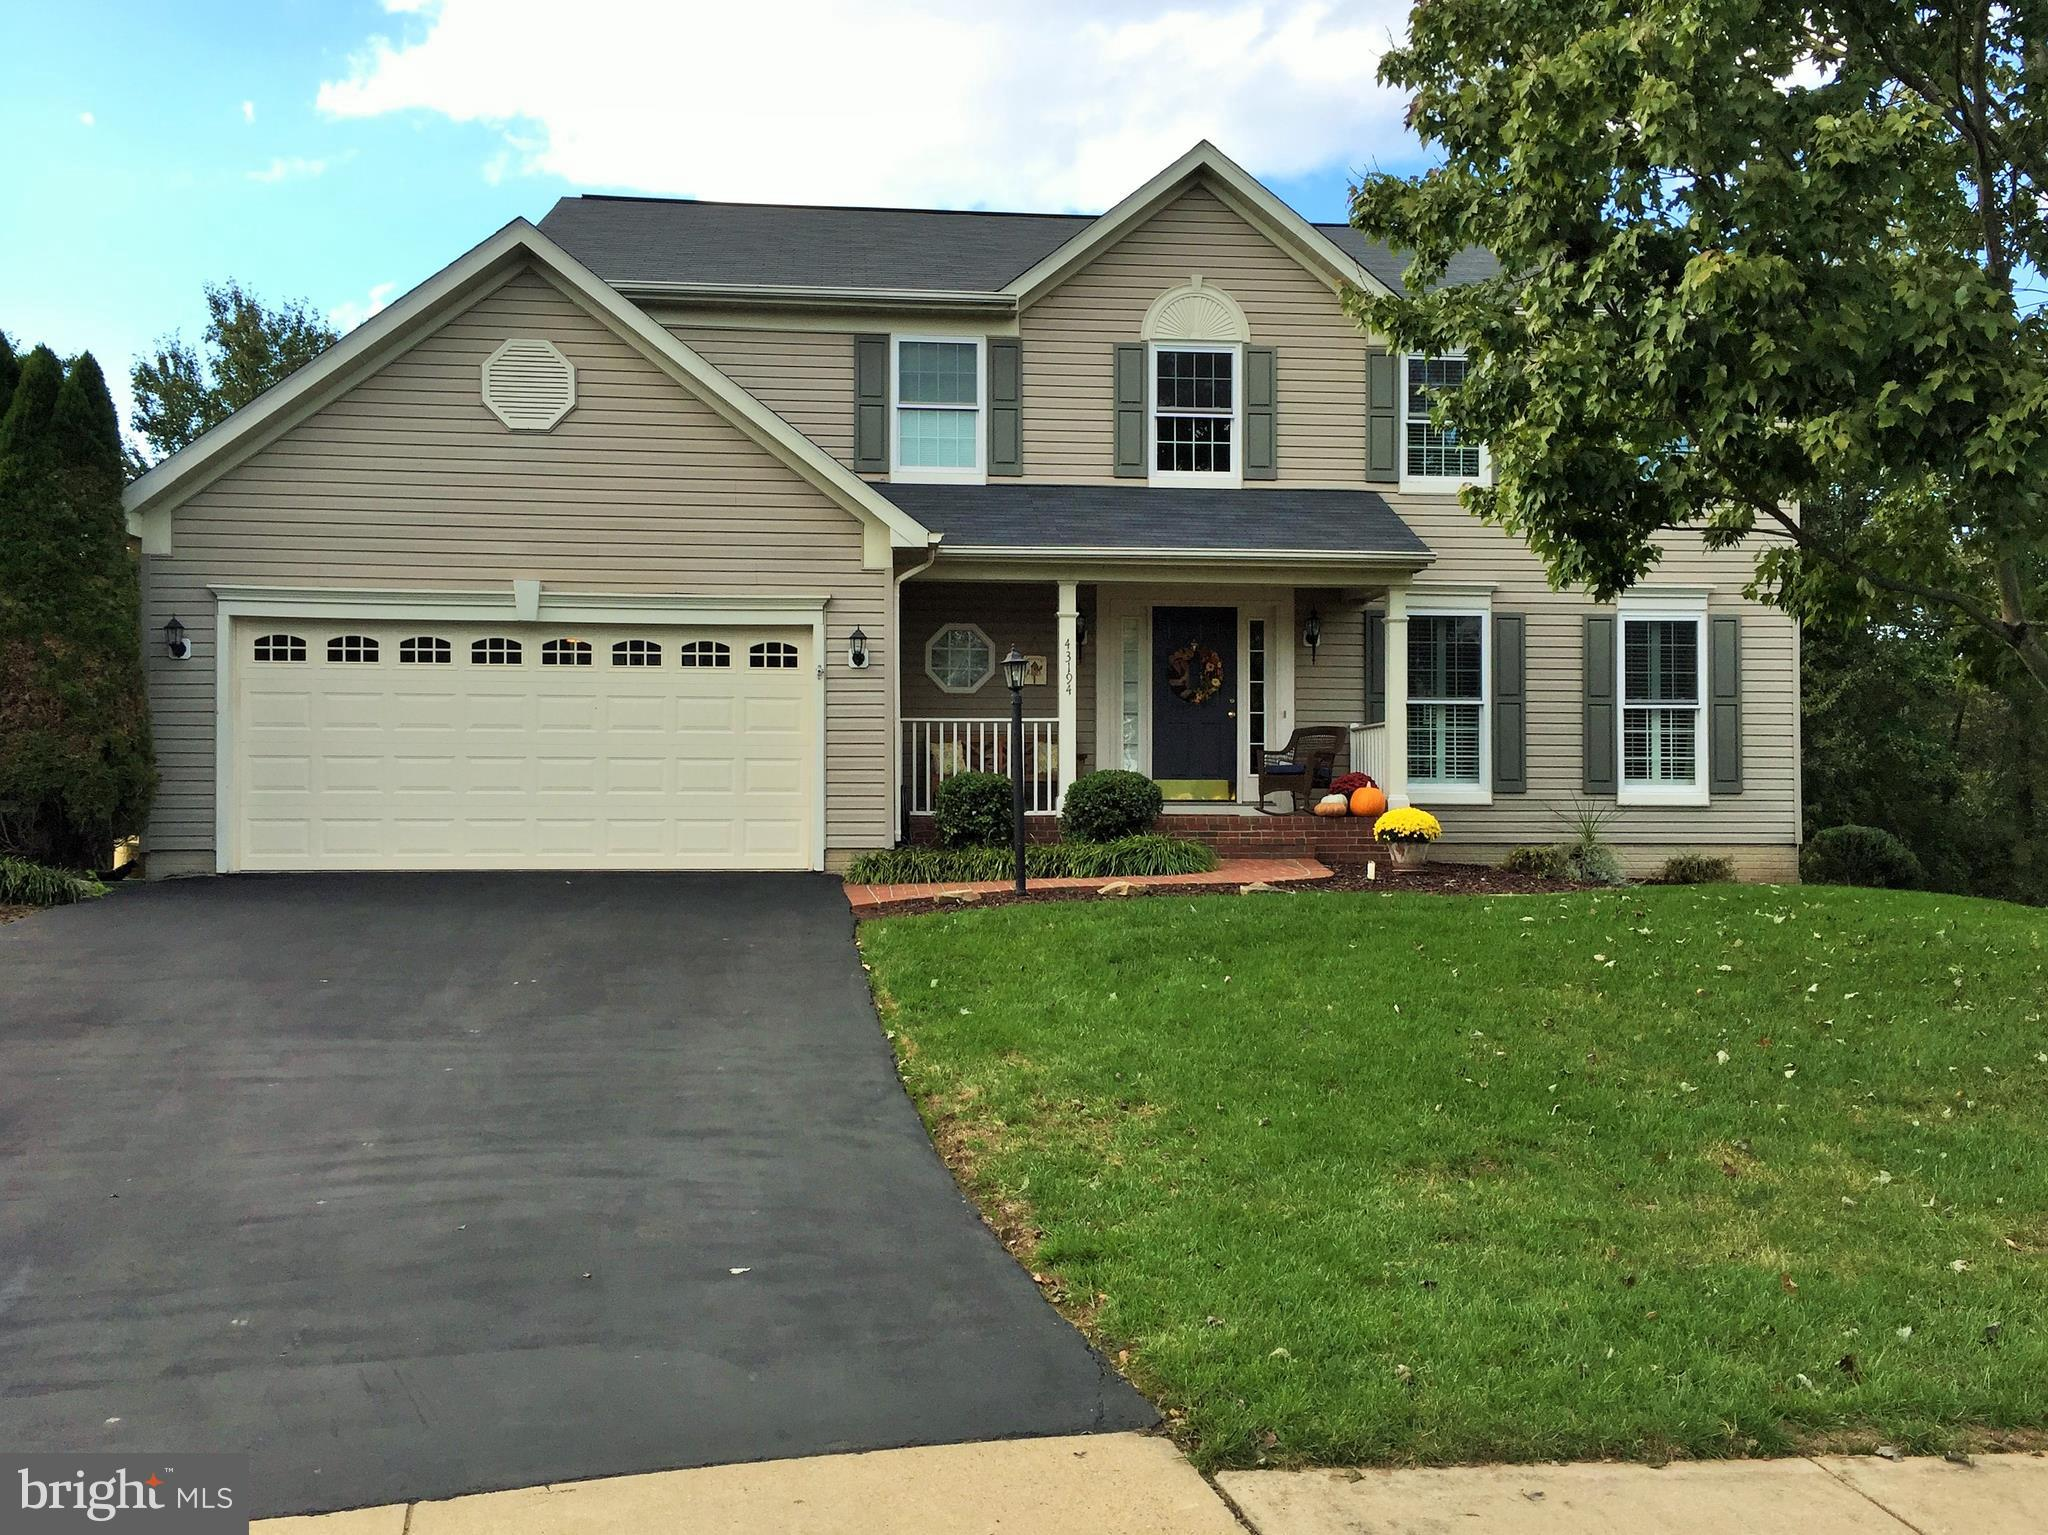 Very well maintained home on a quiet cul de sac in Potomac Station. Property has hardwoods throughou